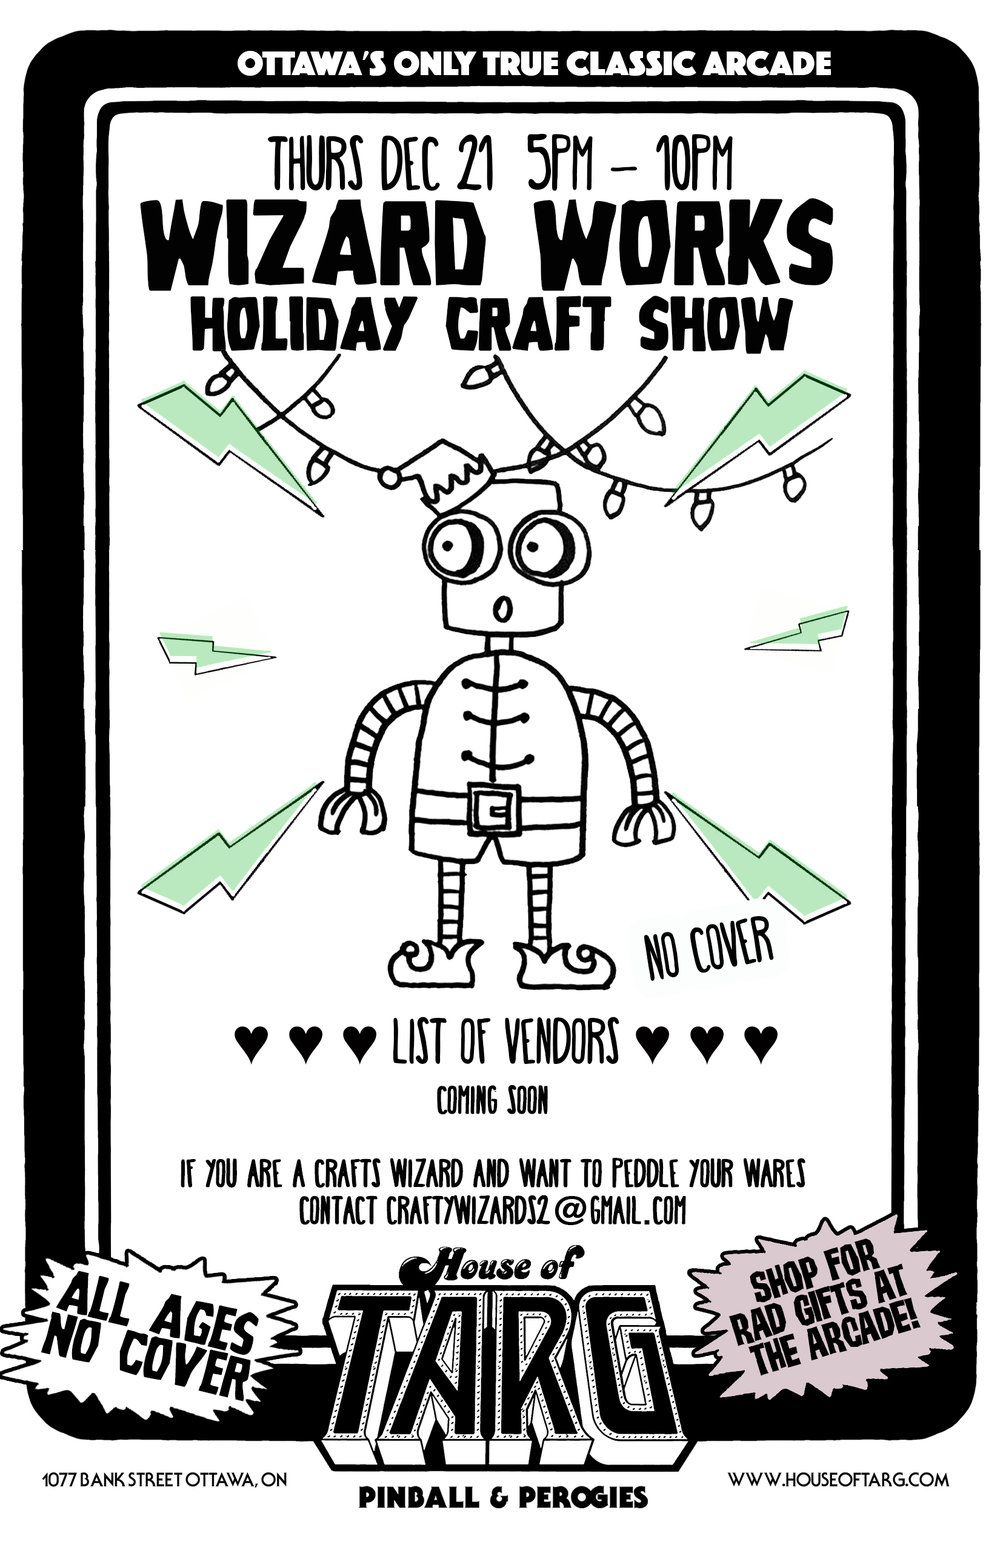 Thurs Dec 21 WIZARD WORKS HOLIDAY CRAFT SHOW  Pick up some last minute gifts made by some of Ottawa's craftiest wizards. Warning - nearly double the amount of usual vendors this time - gonna be a good one.    more details here